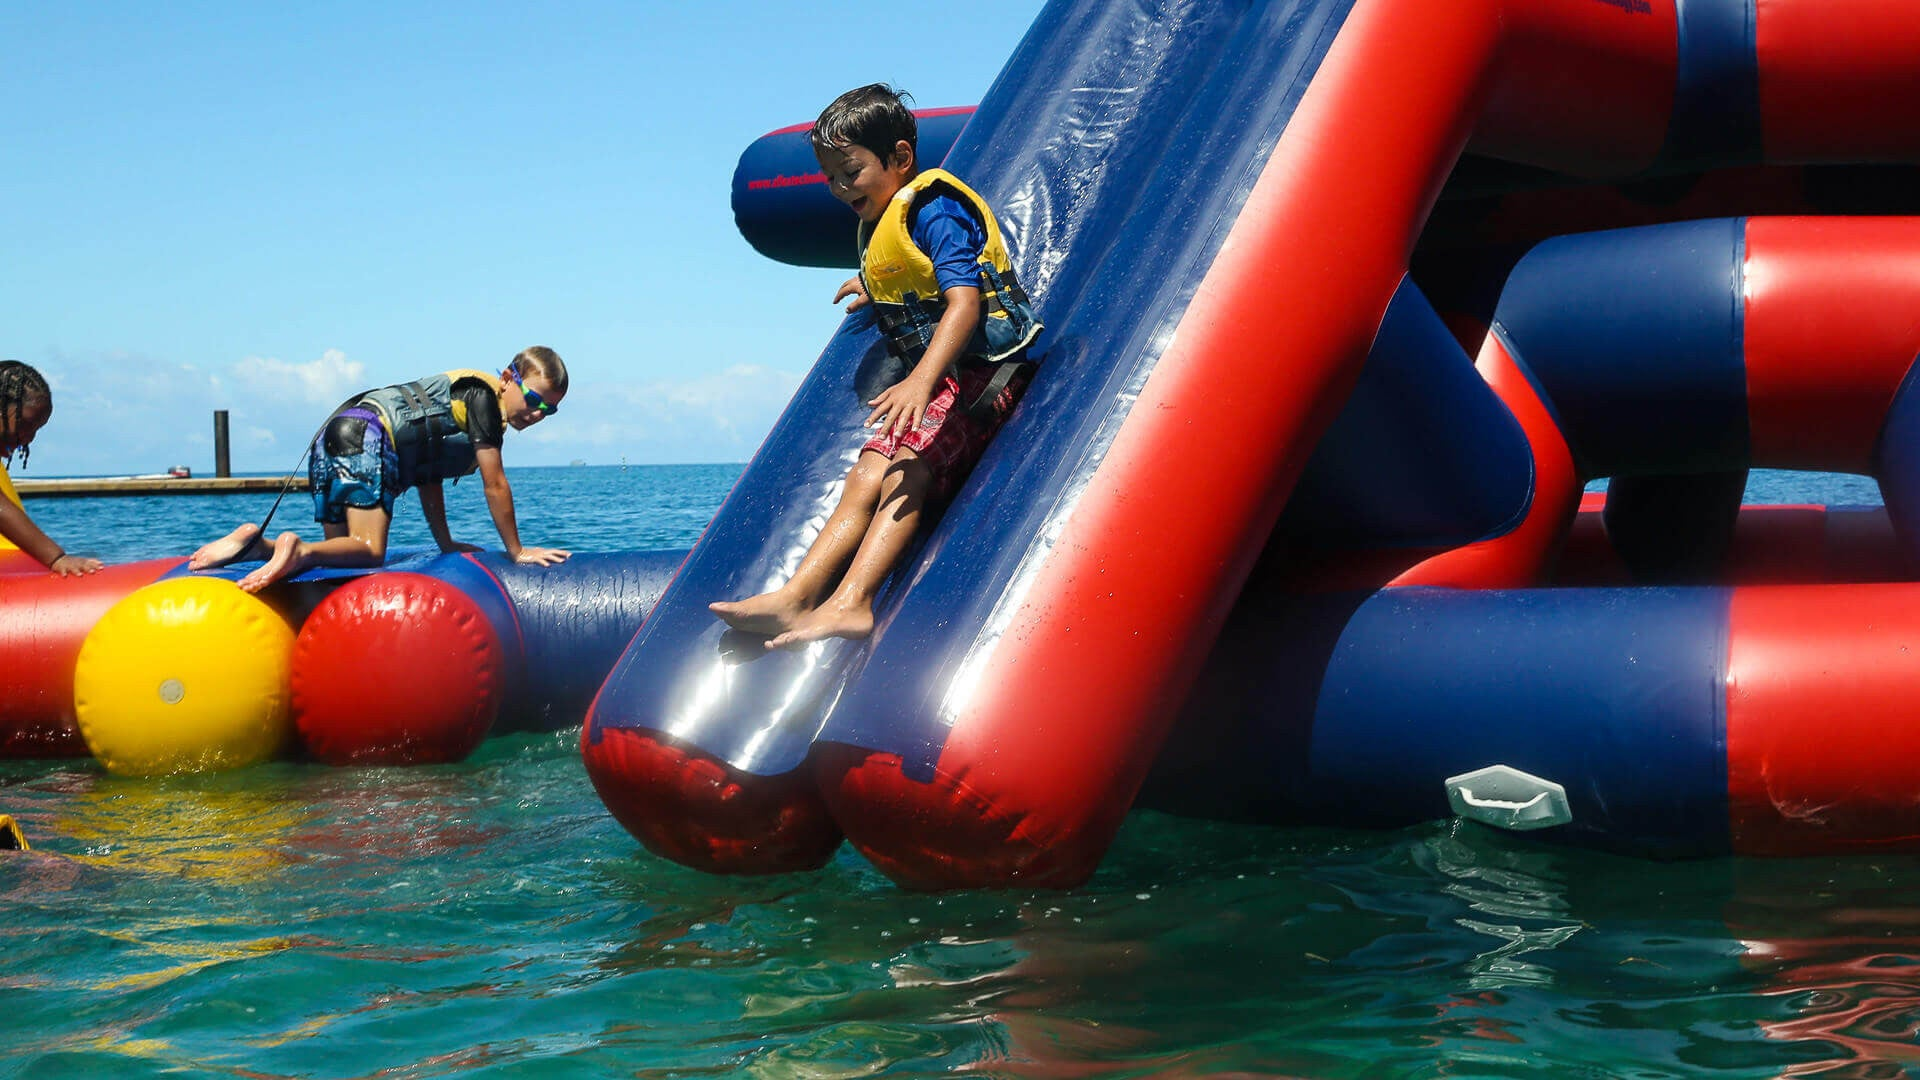 Action Tower (Aqua Adventure) - Inflatable Waterpark Open Water Aqua Adventure - Aflex Technology